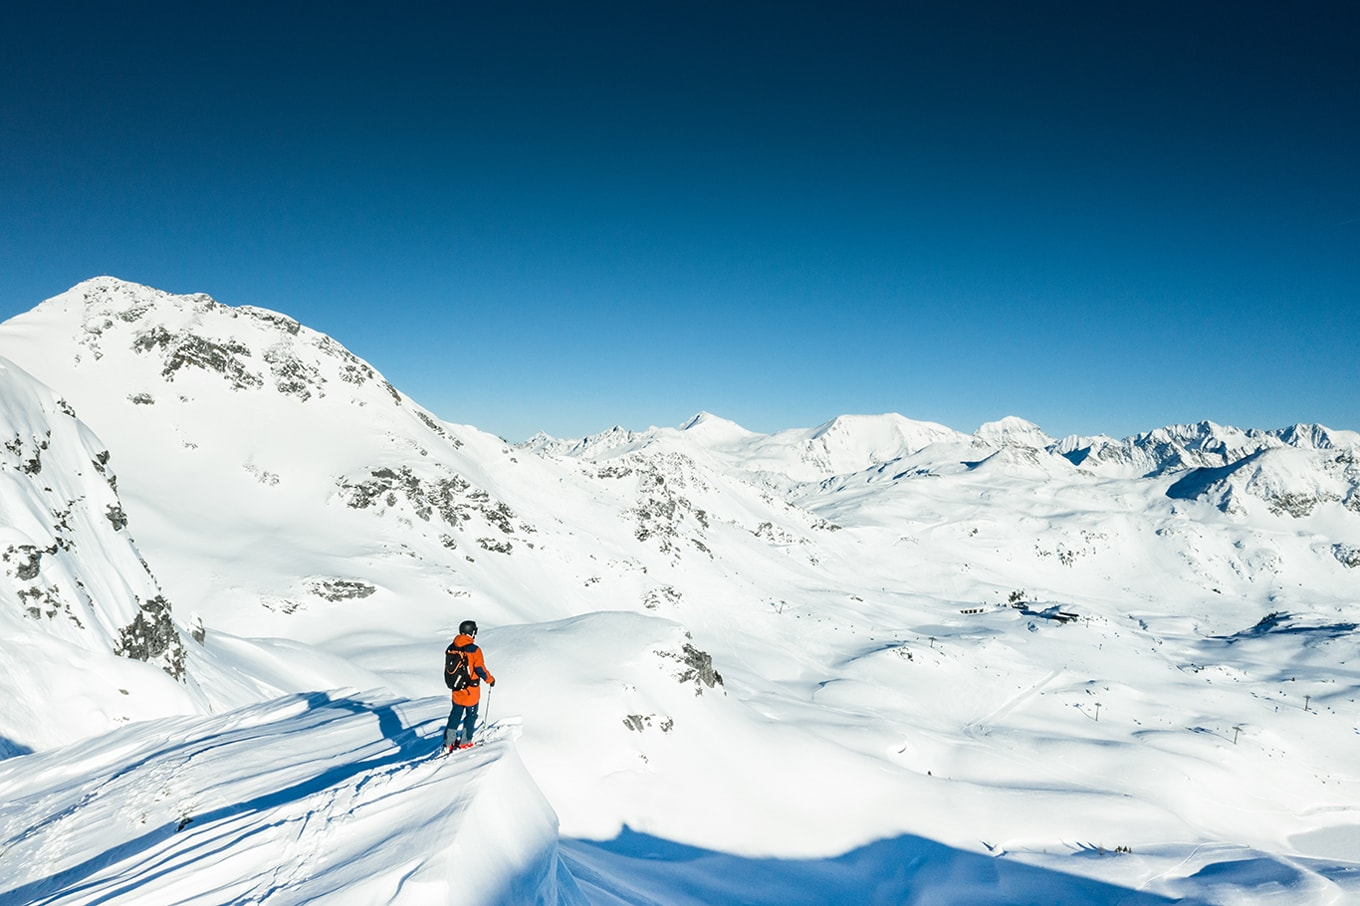 A-3_Key-Visual-The-best-of-both-worlds-Piste-und-Powder_Obertauern-min